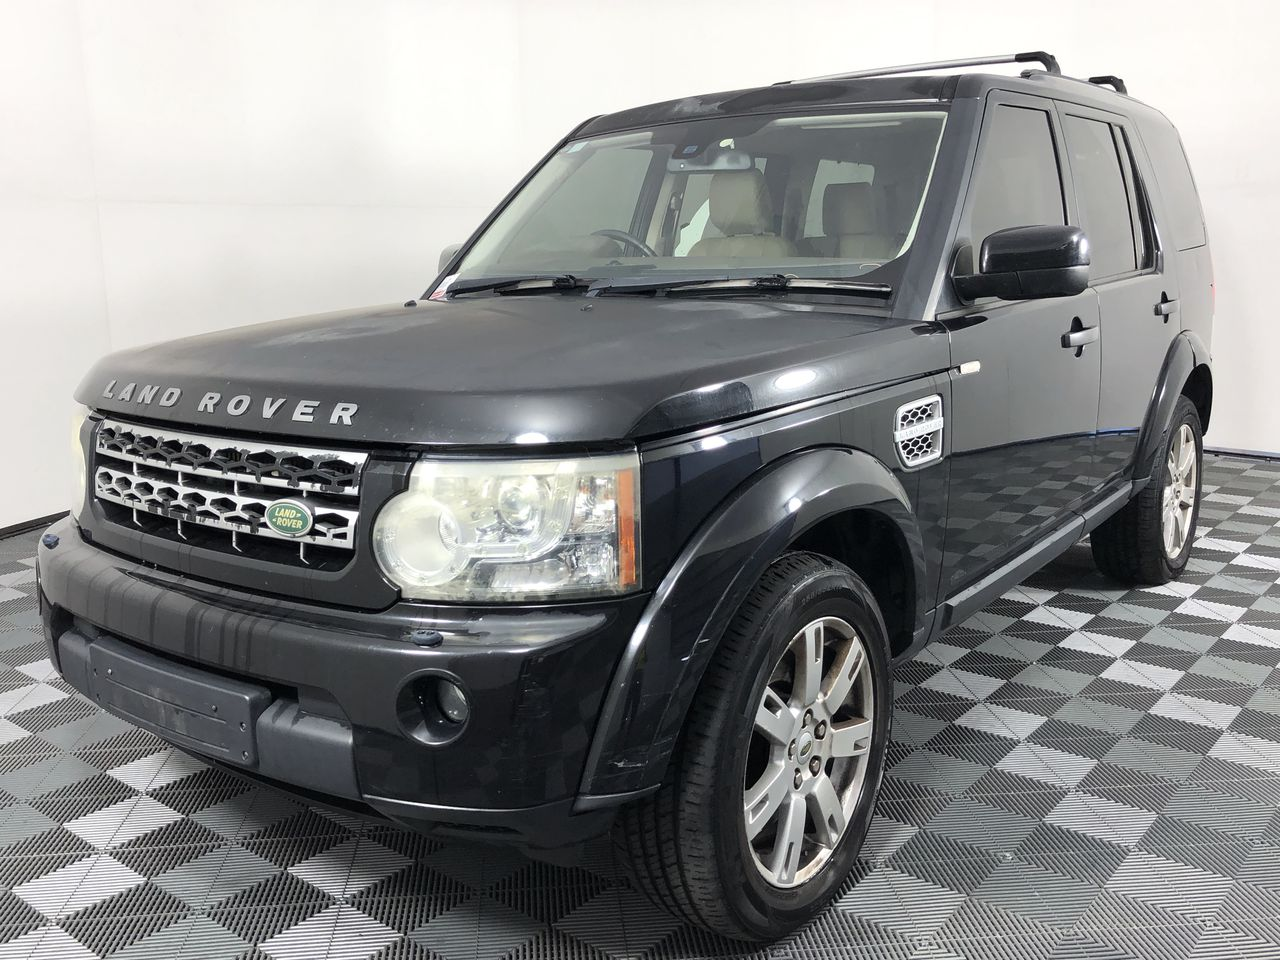 2009 Land Rover Discovery 3.0 TDV6 SE Series 4 T/D Automatic 7 Seats Wagon